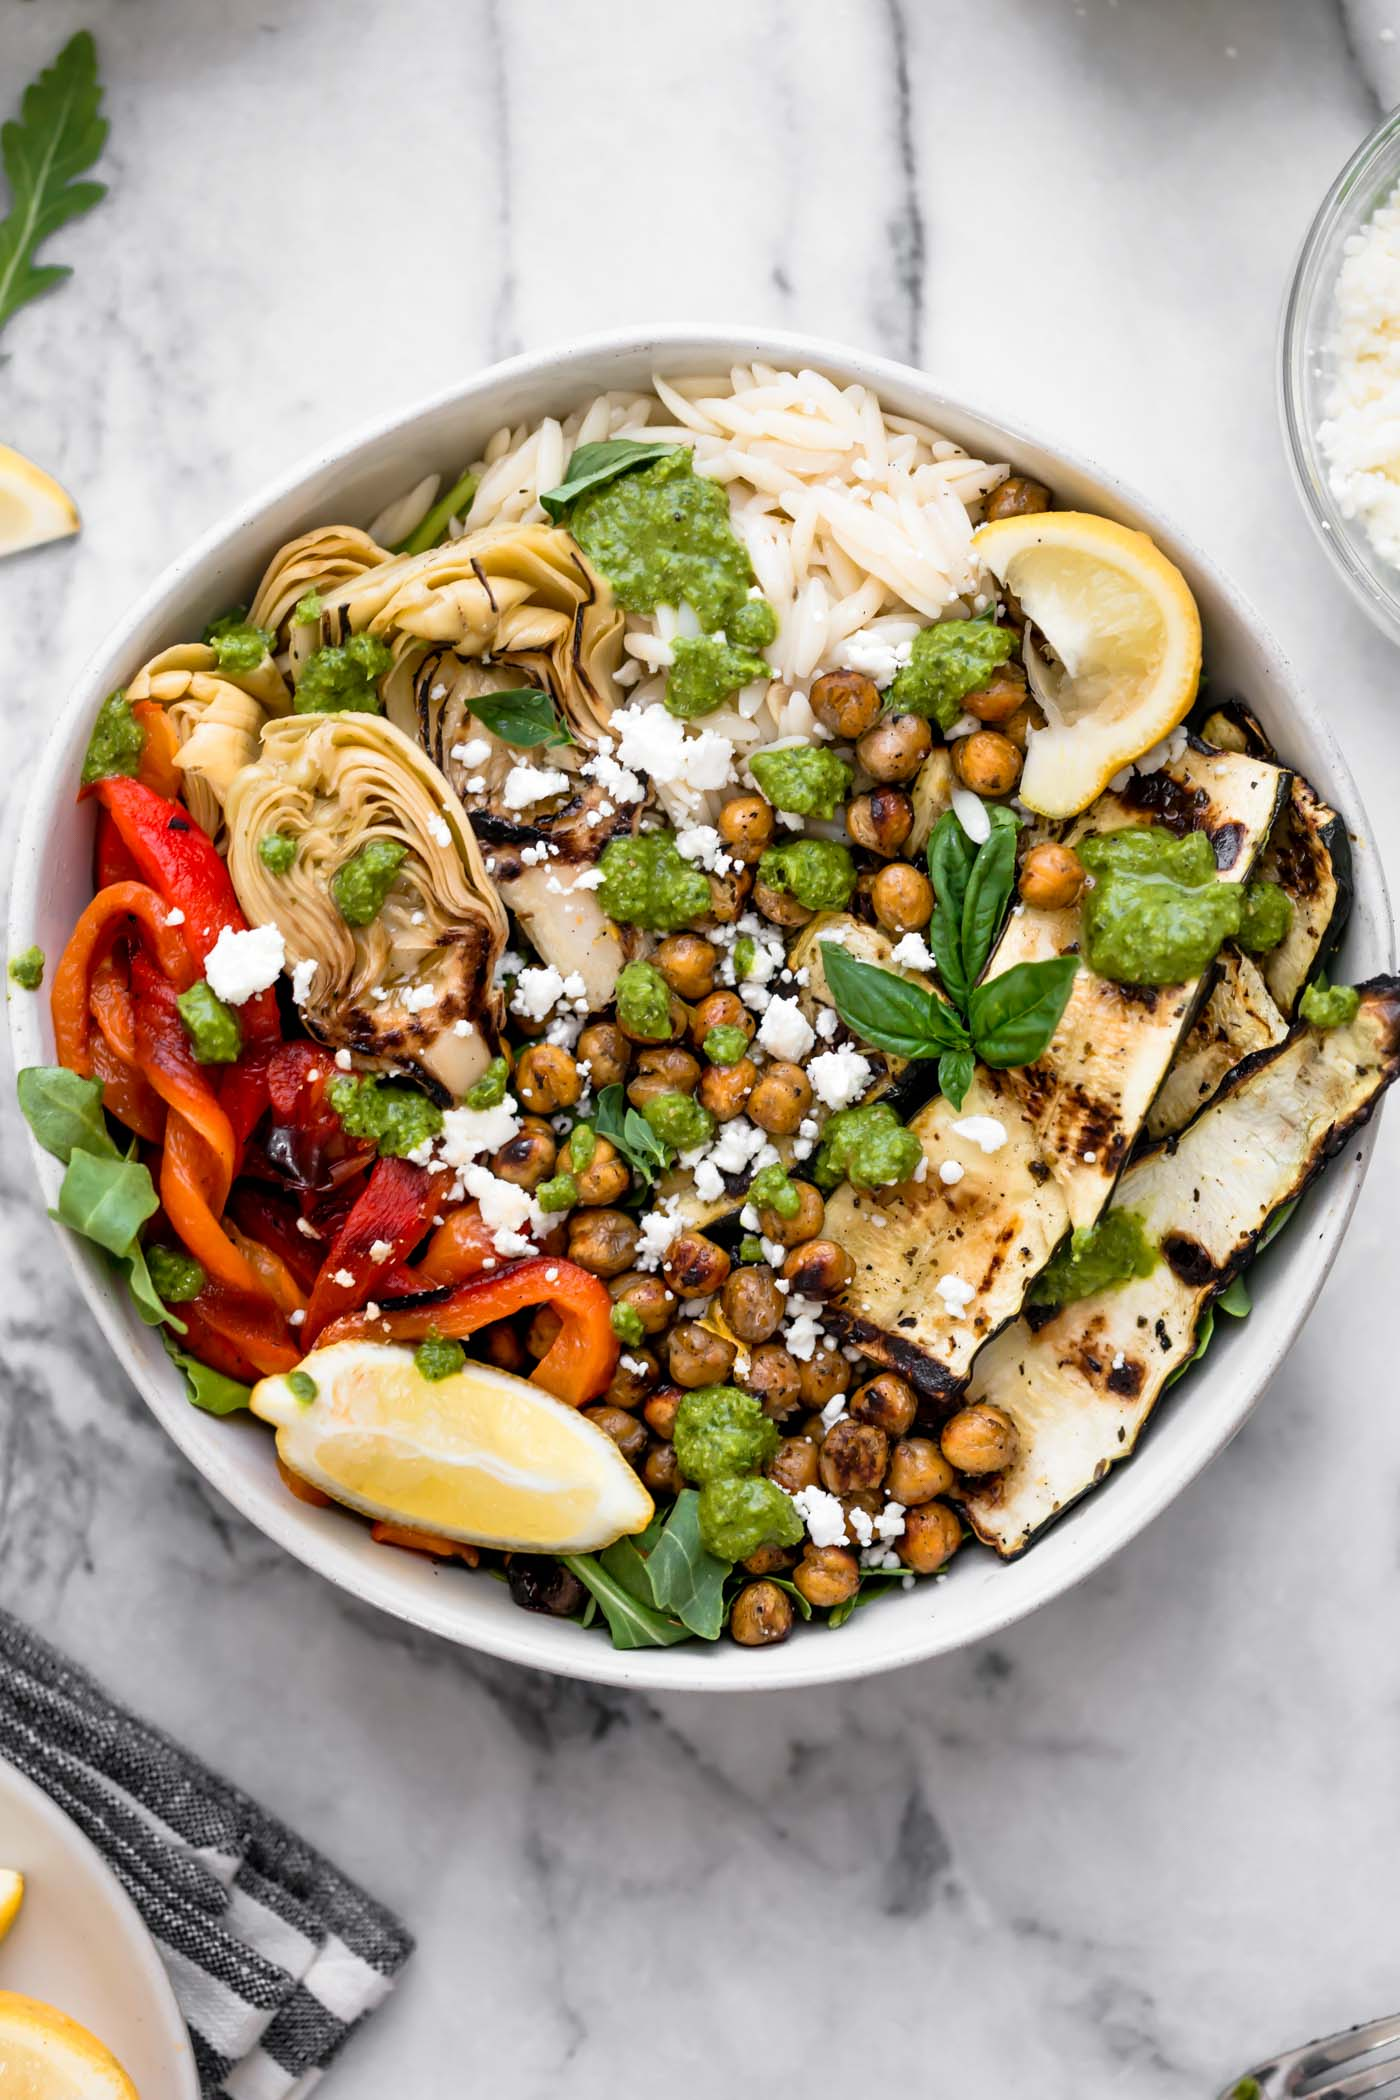 grilled vegetable primavera bowls with pesto & smoky chickpeas! an easy 30-minute vegetarian recipe perfect for the end of summer, with grilled zucchini, grilled bell pepper, grilled artichoke hearts, and smoky grilled chickpeas, plus orzo & lemony pesto. totally healthy, naturally plant-based, easily made gluten-free, & perfect for meal prep! #playswellwithbutter #vegetableprimavera #vegetablerecipes #healthyvegetableprimavera #easydinnerrecipes #healthyvegetarianrecipes #vegetarianmealprep #zucchinirecipes #mealpreprecipes